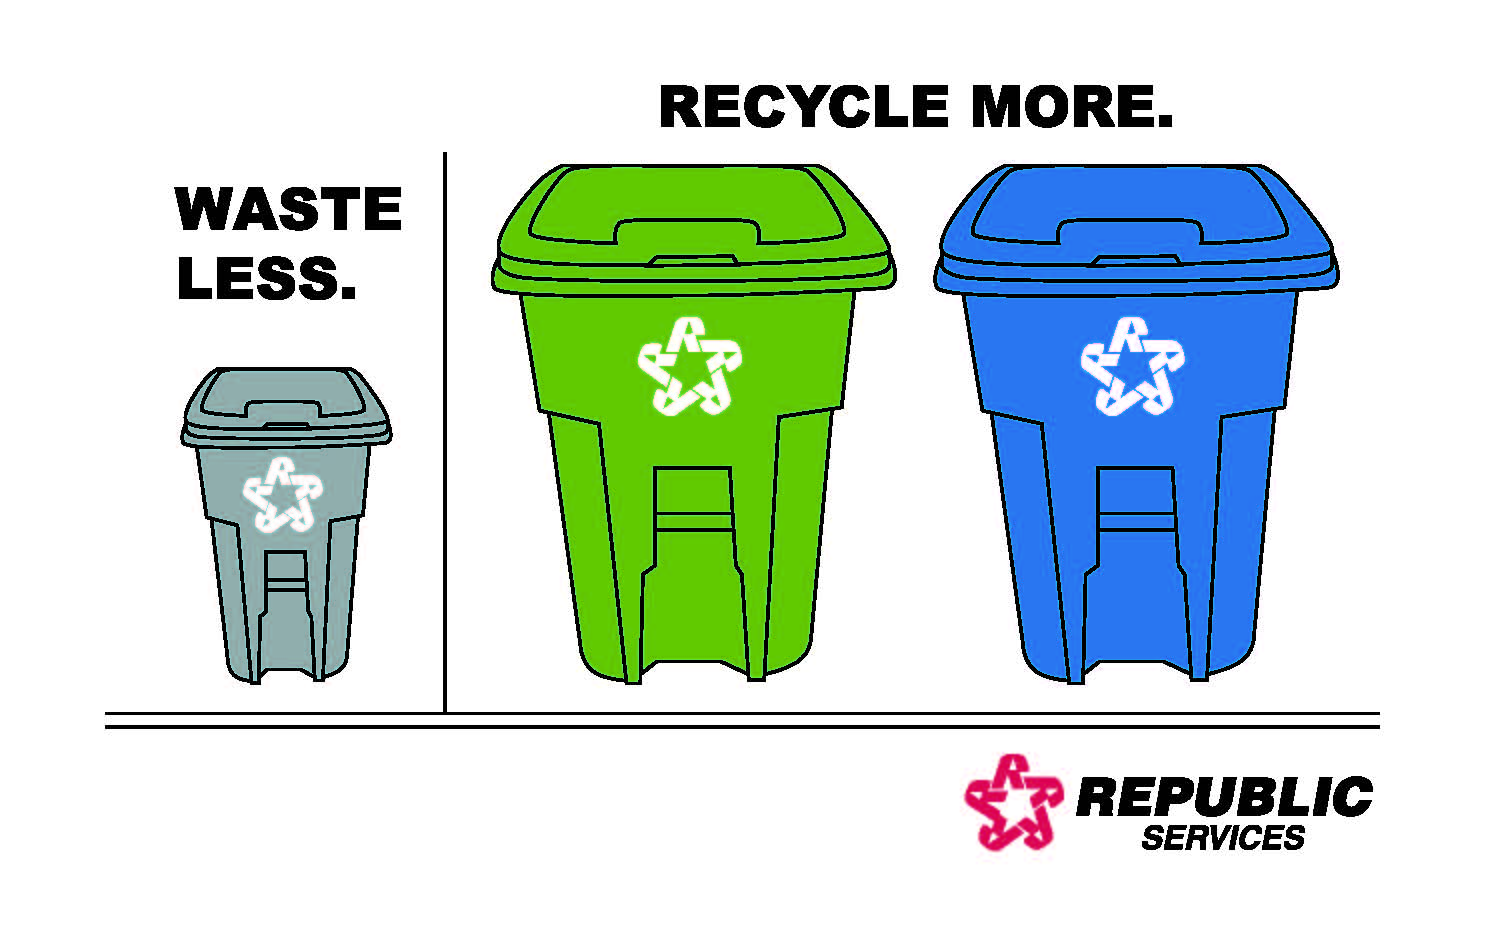 Republic Services - Waste Less - Recycle More Logo with Recycle Bins